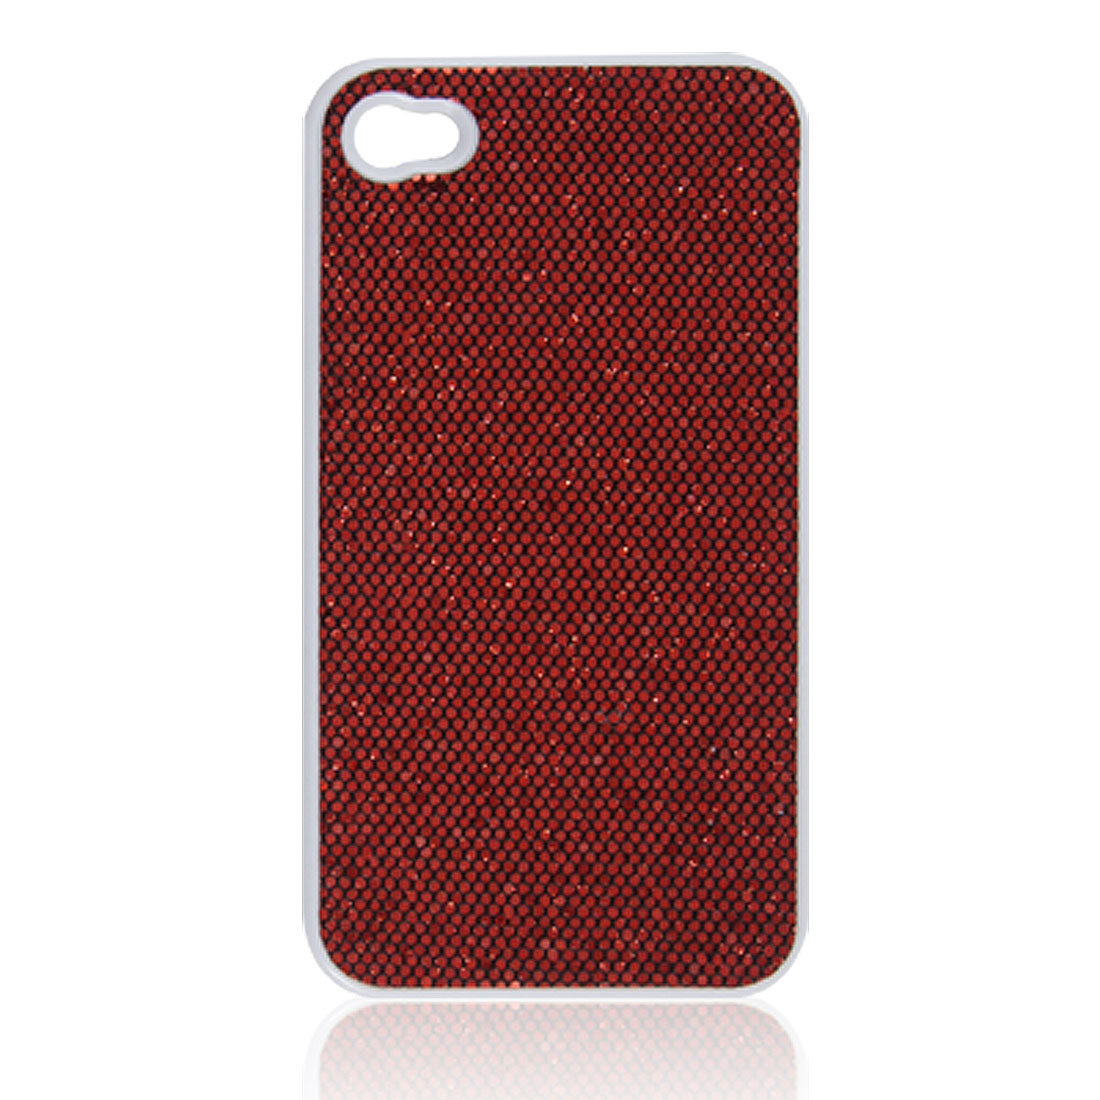 Hard Plastic Red Sequins Shining Shell Case for iPhone 4 4G 4S